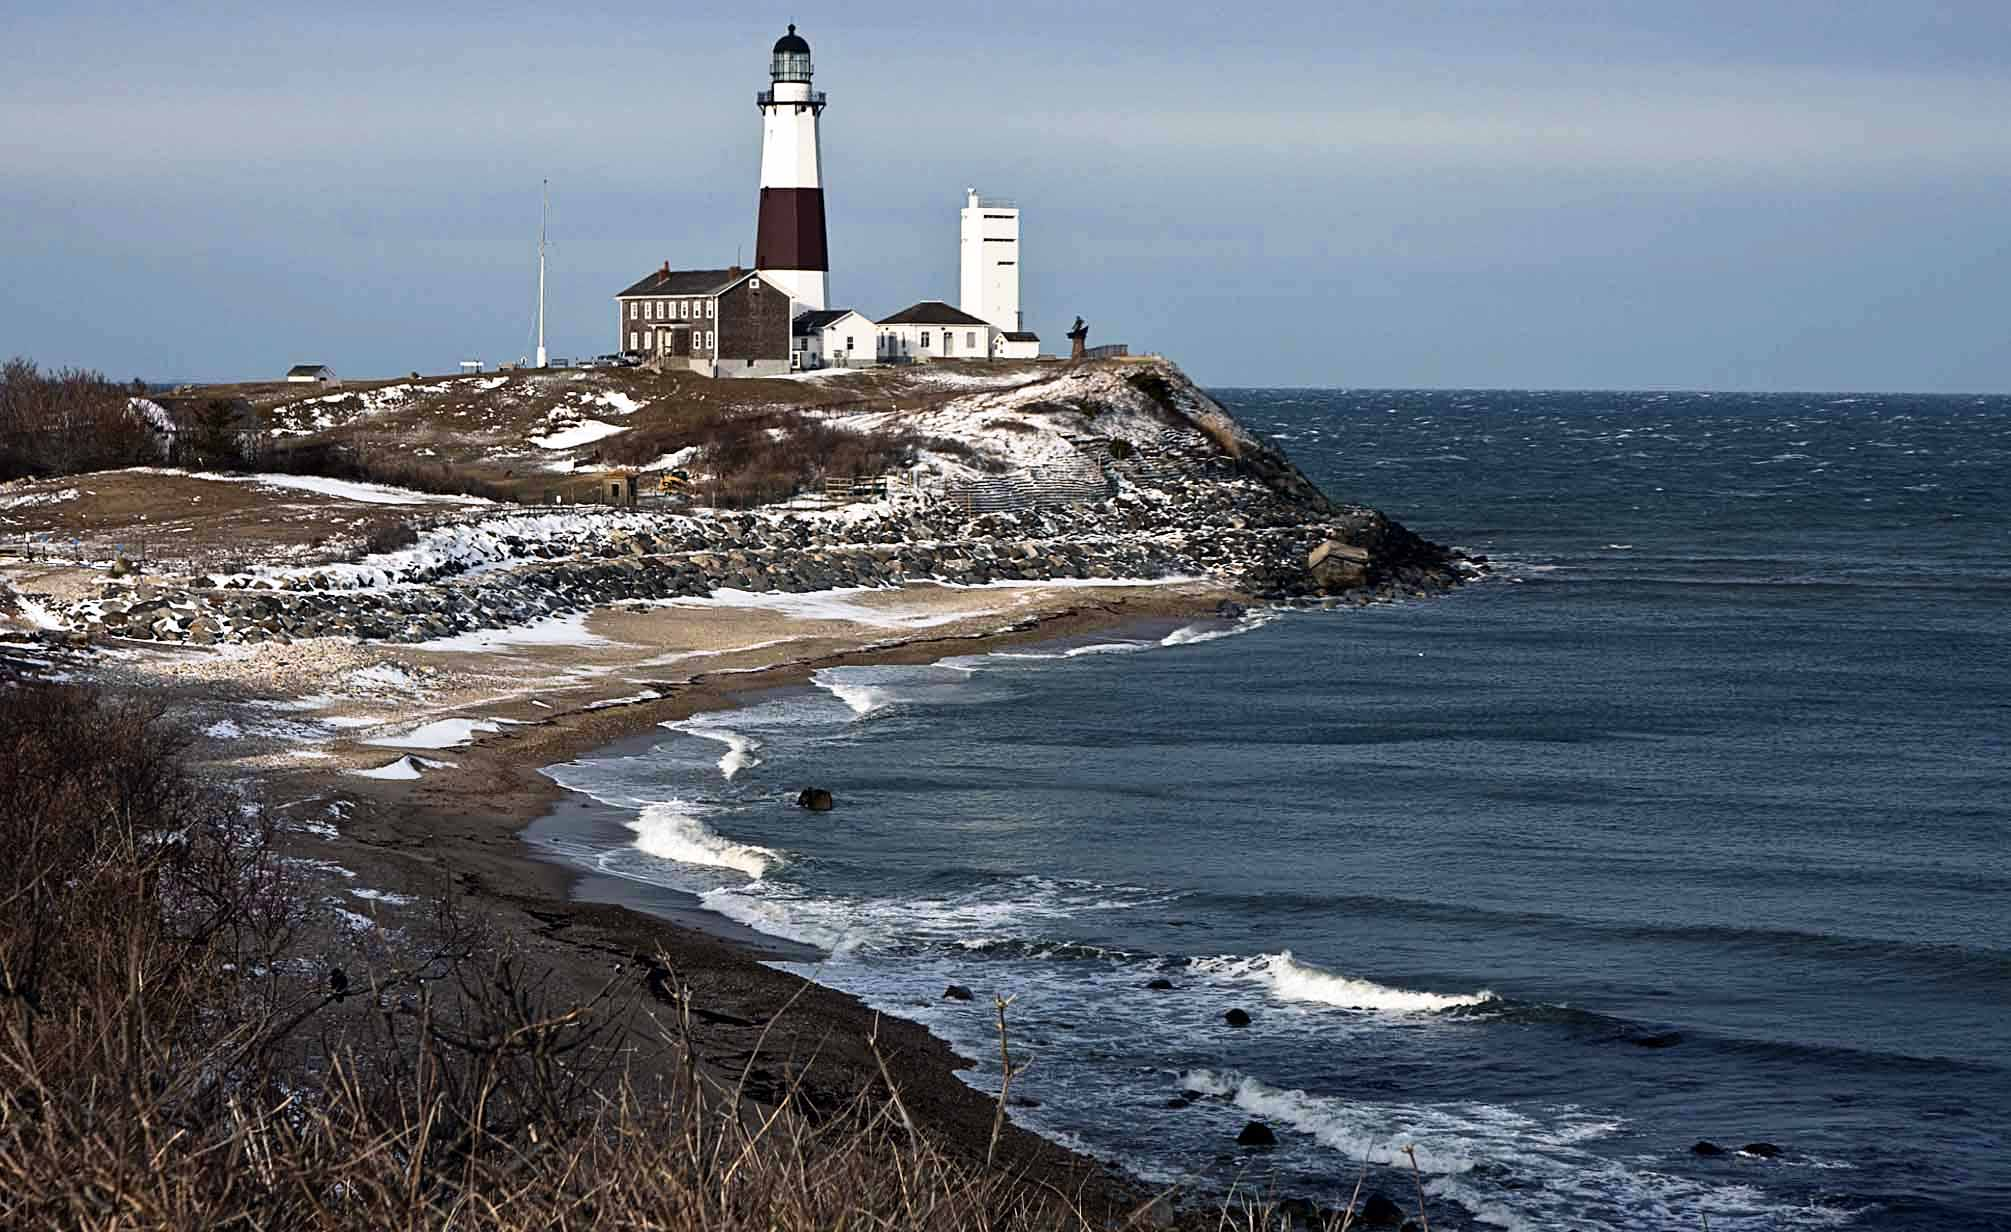 15 Things You Can Do During the Winter In The Hamptons